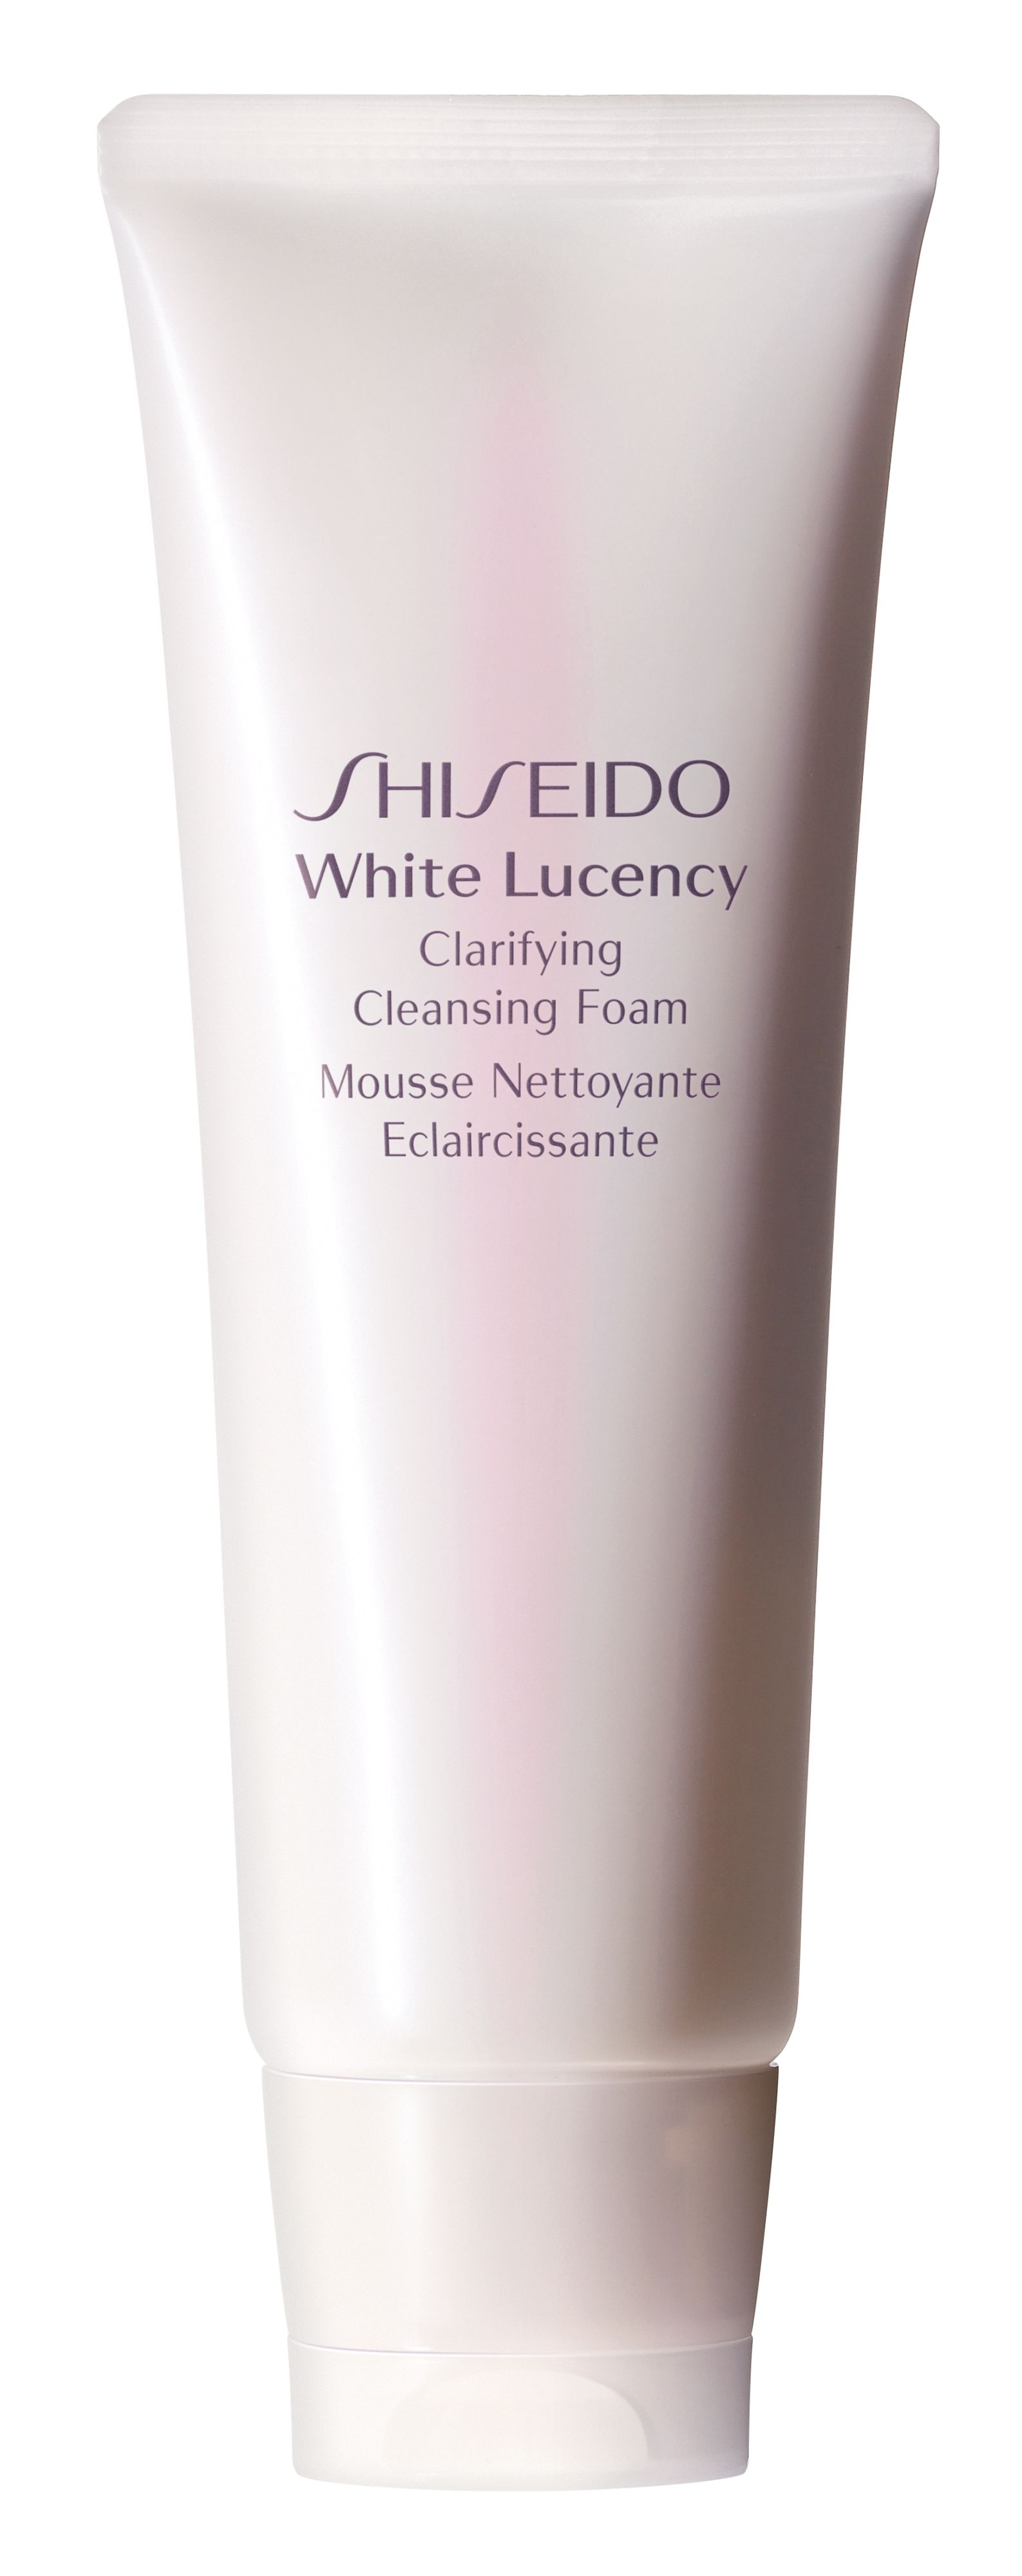 Shiseido White Lucency Clarifying Cleansing Foam 75ml